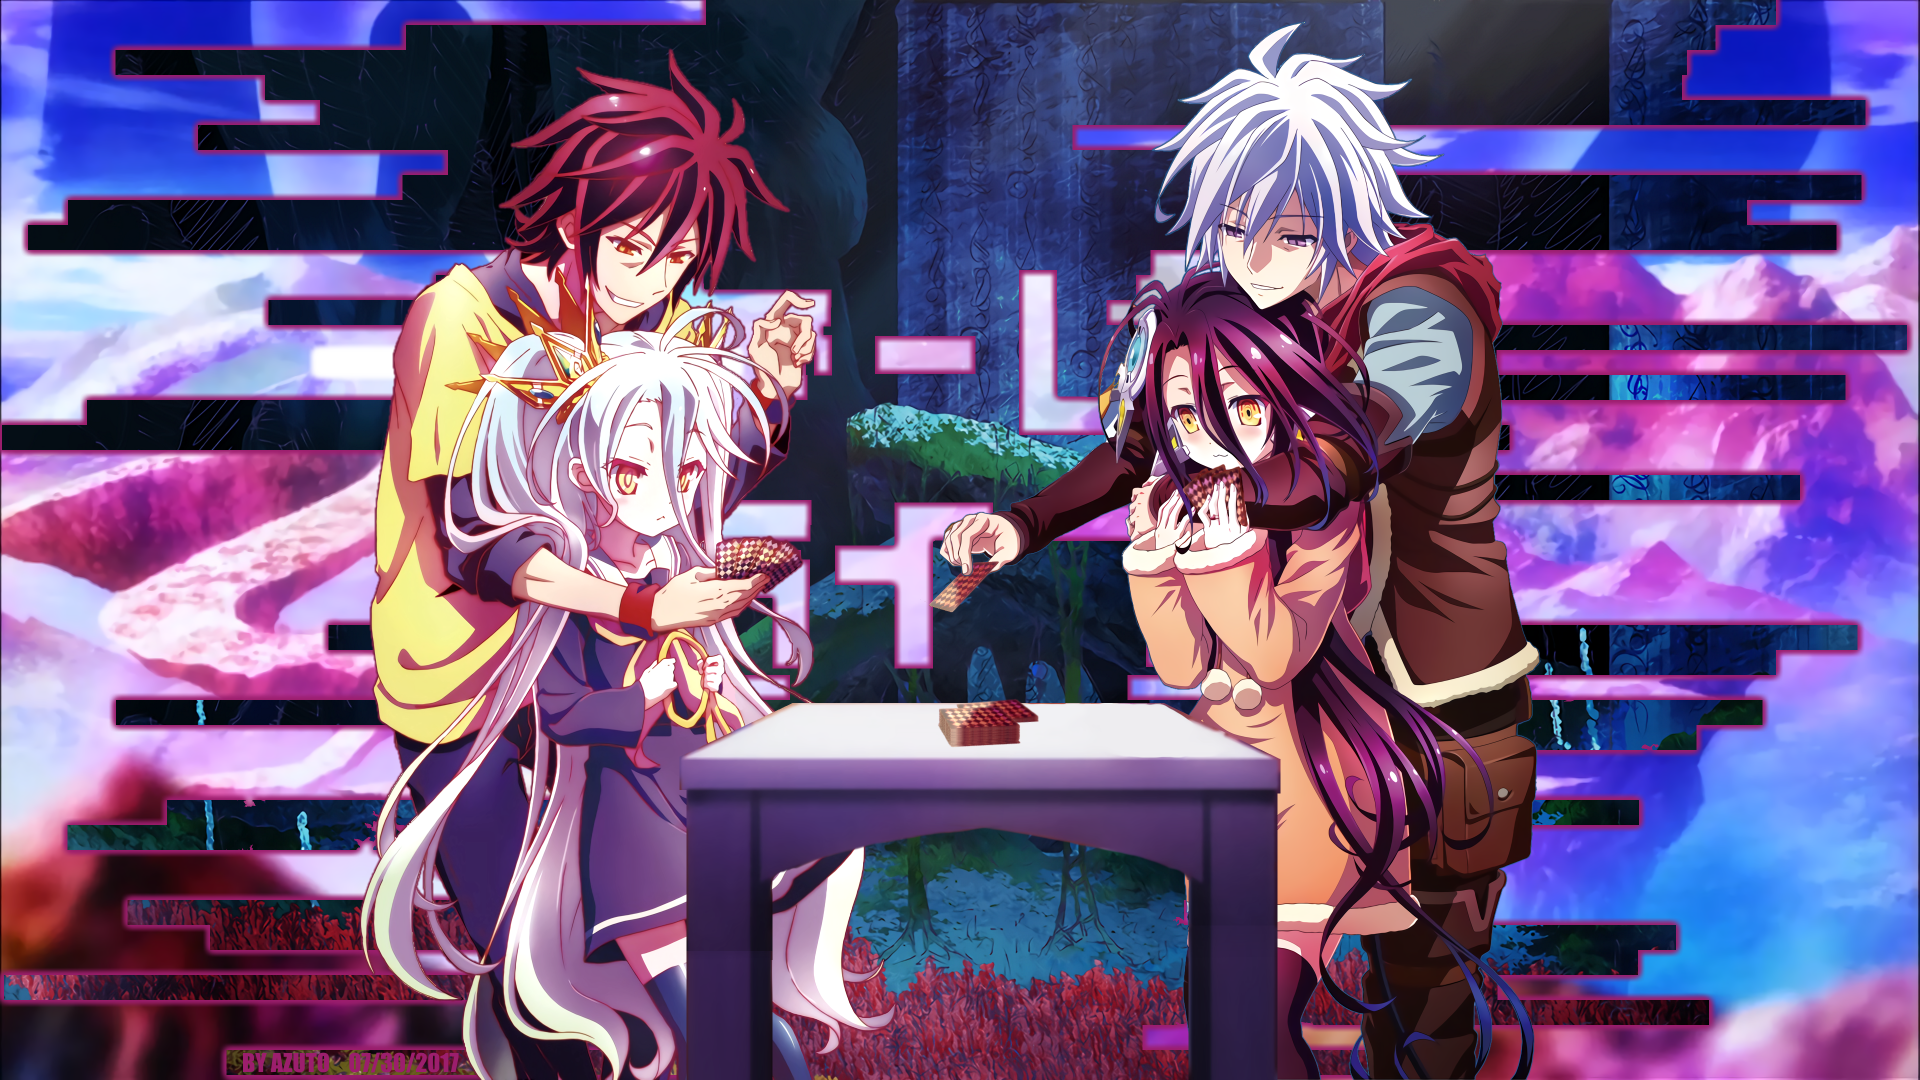 No Game No Life Hd Wallpaper Background Image 1920x1080